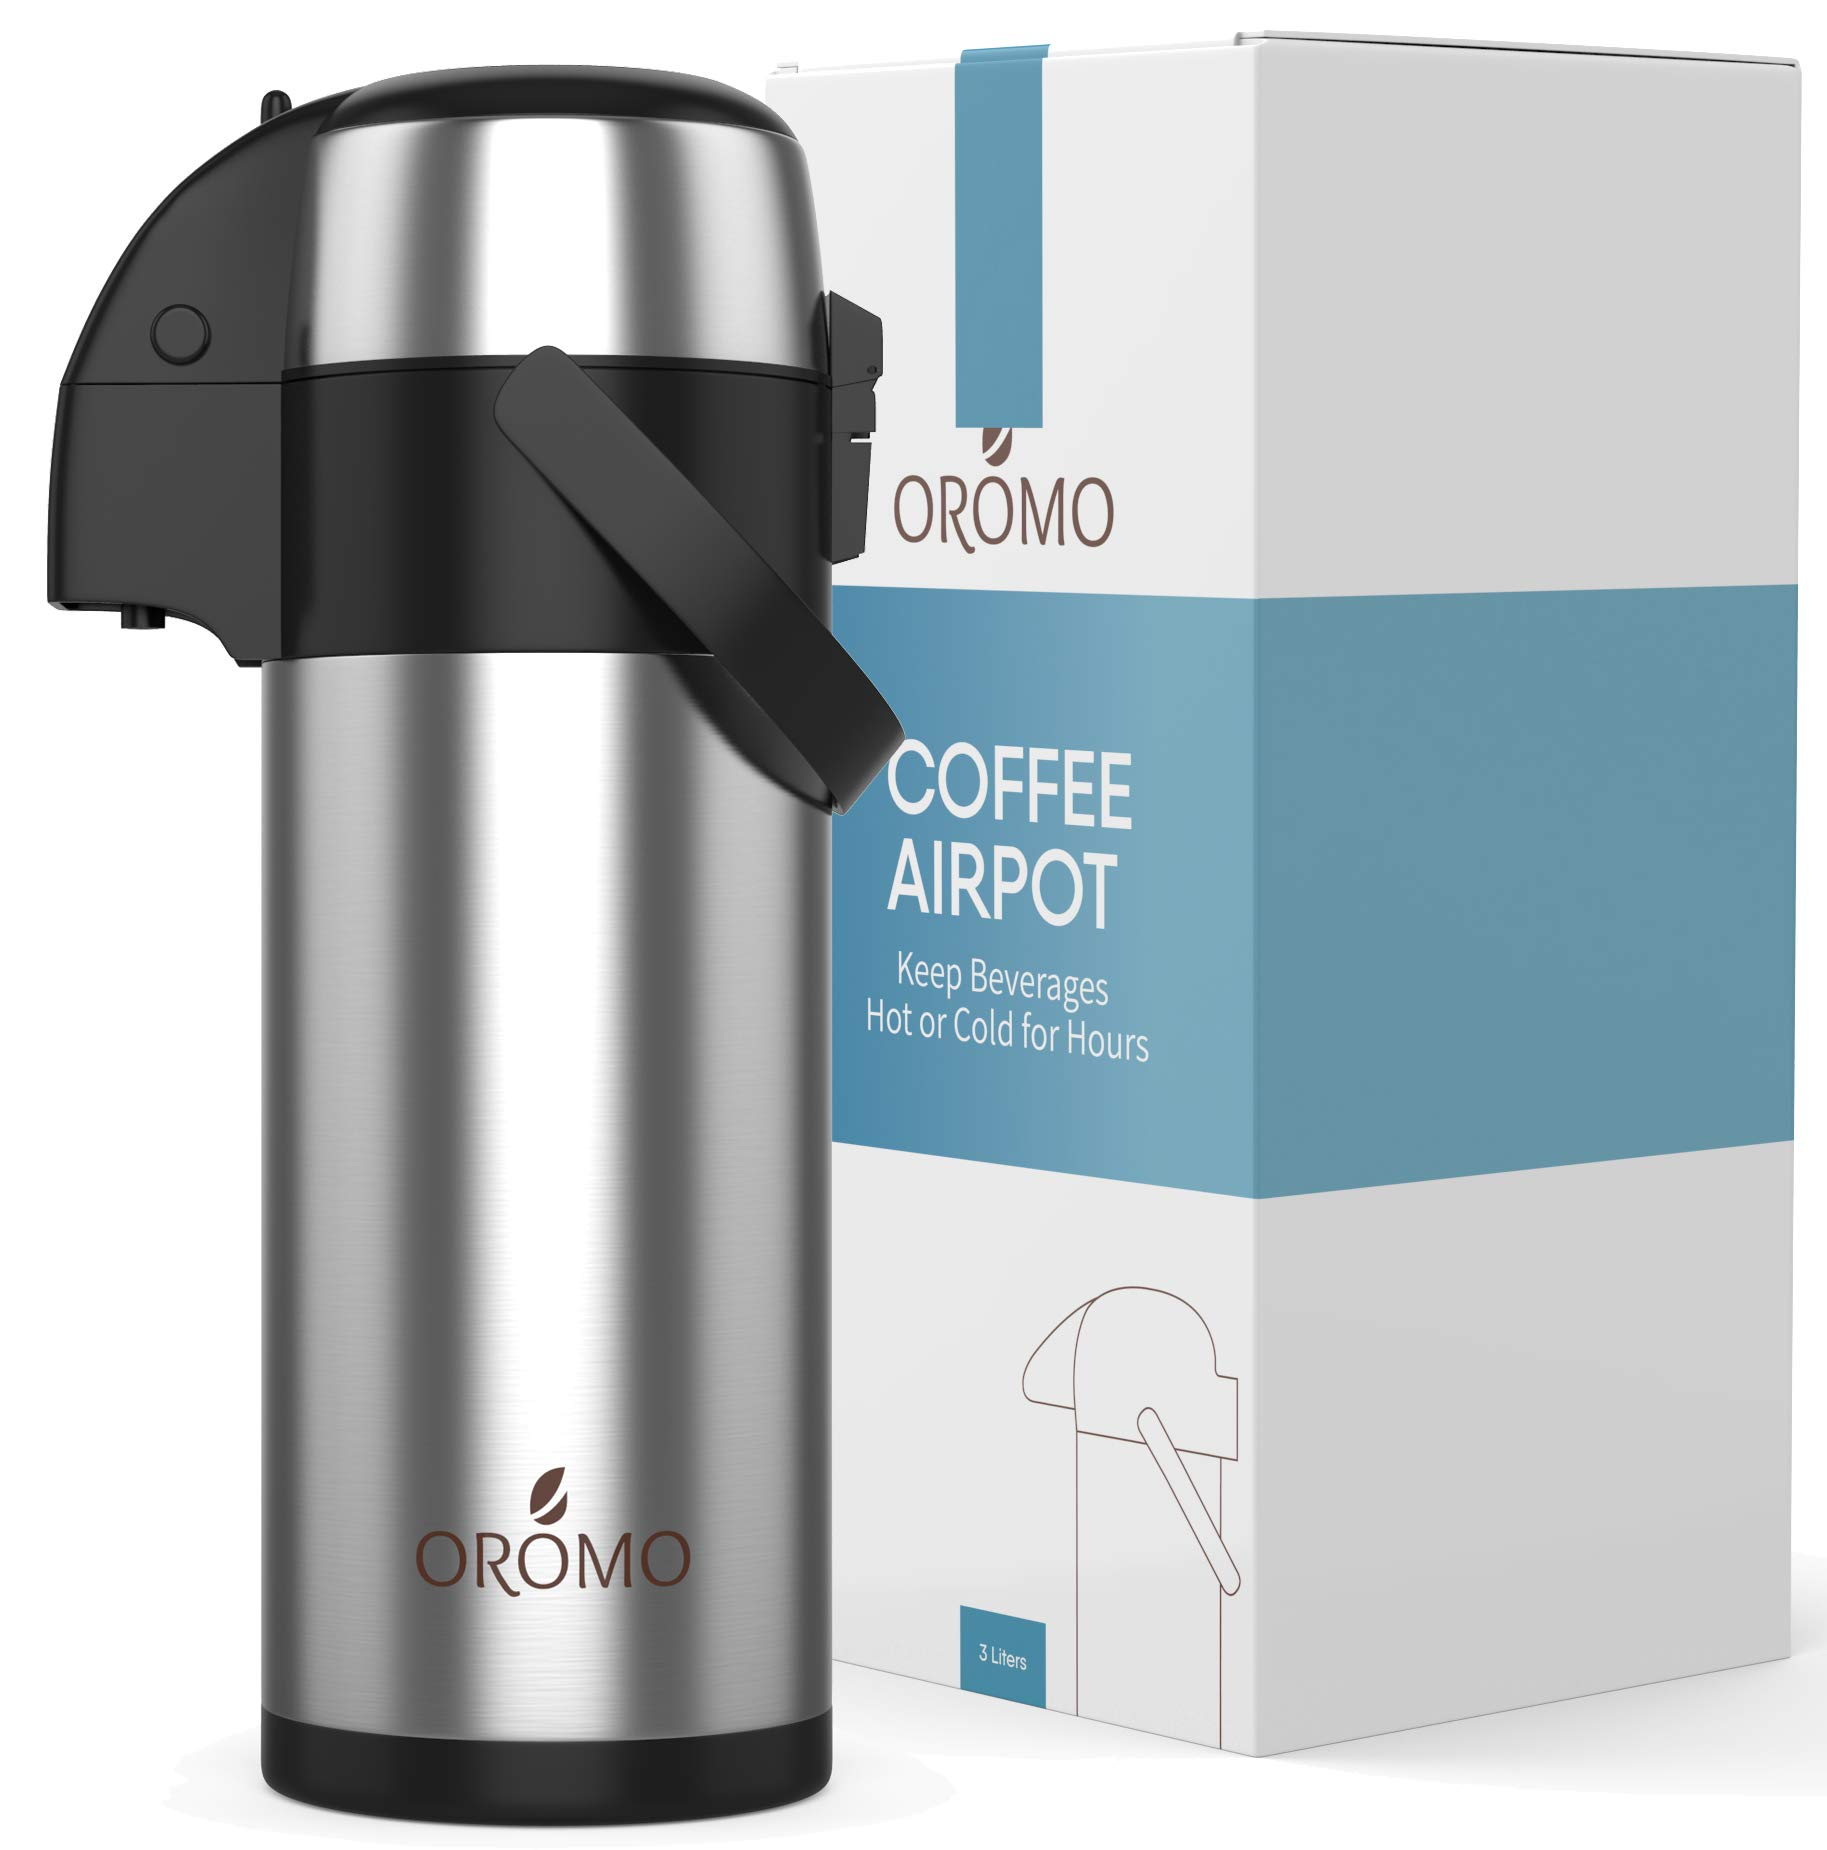 (102 oz. / 3L) Airpot Coffee Dispenser w/Pump - Large Commercial Grade Coffee Thermos/Thermal Urn Carafe Beverage Dispenser by Oromo. Keep Hot Drinks Hot for 12 Hours or Cold Drinks Cold for 24 hrs